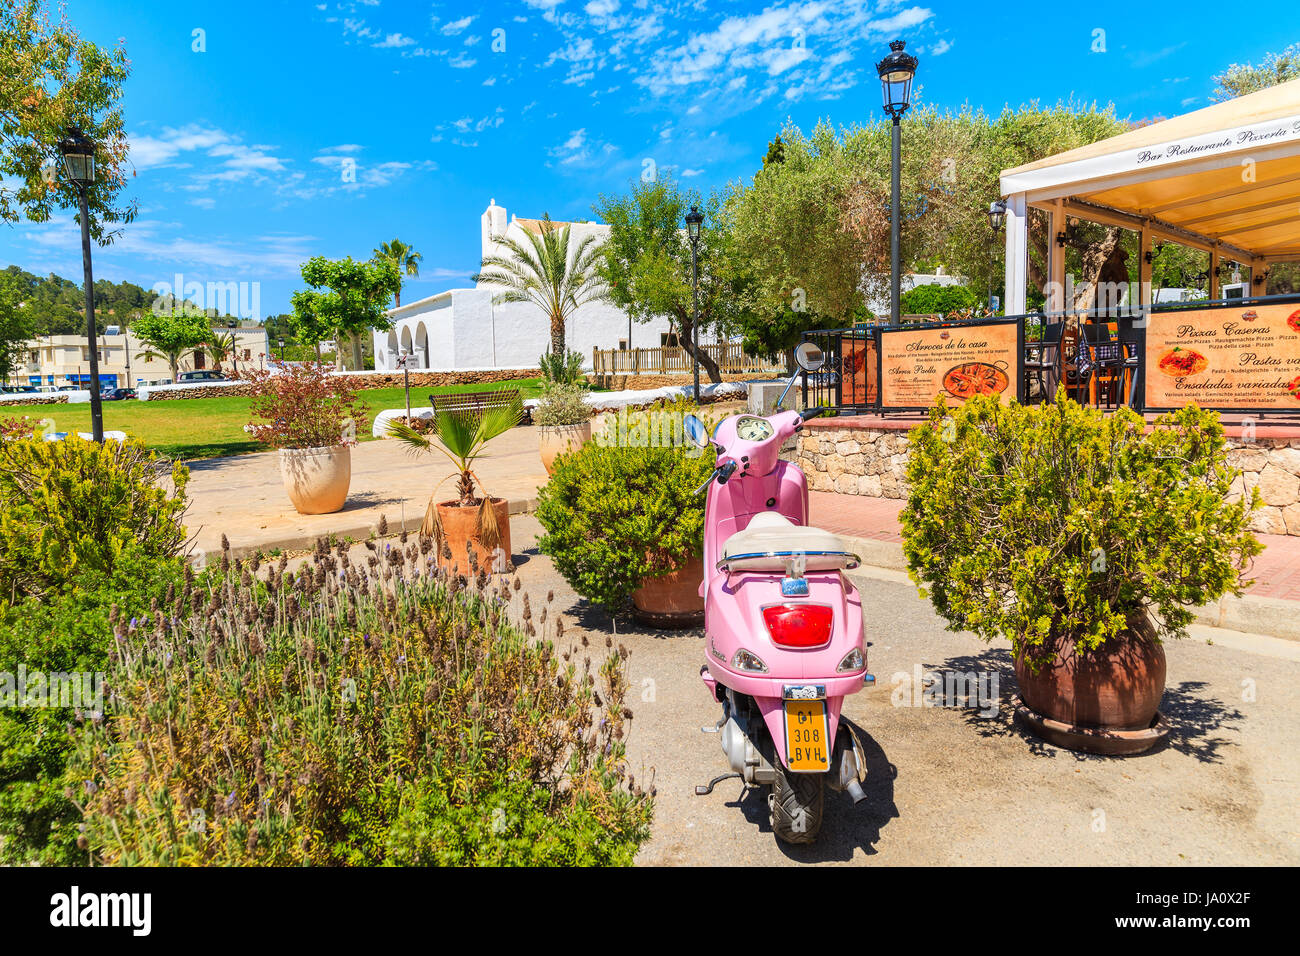 ibiza island, spain - may 18, 2017: classic pink vespa scooter